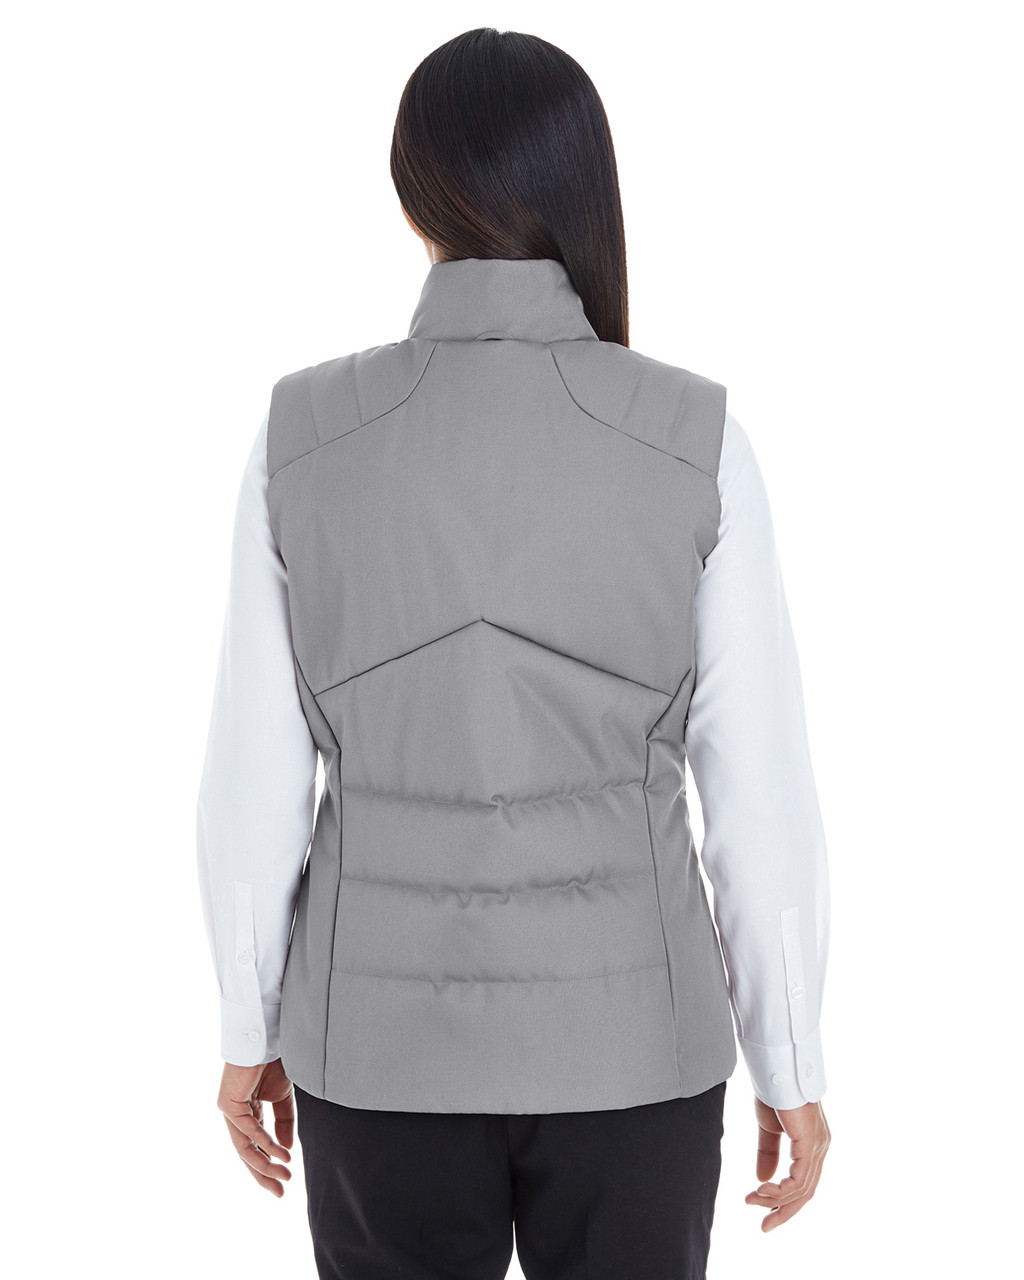 Graphite/Red - BACK - NE702W Ash City - North End Ladies' Engage Interactive Insulated Vest Blankclothing.ca